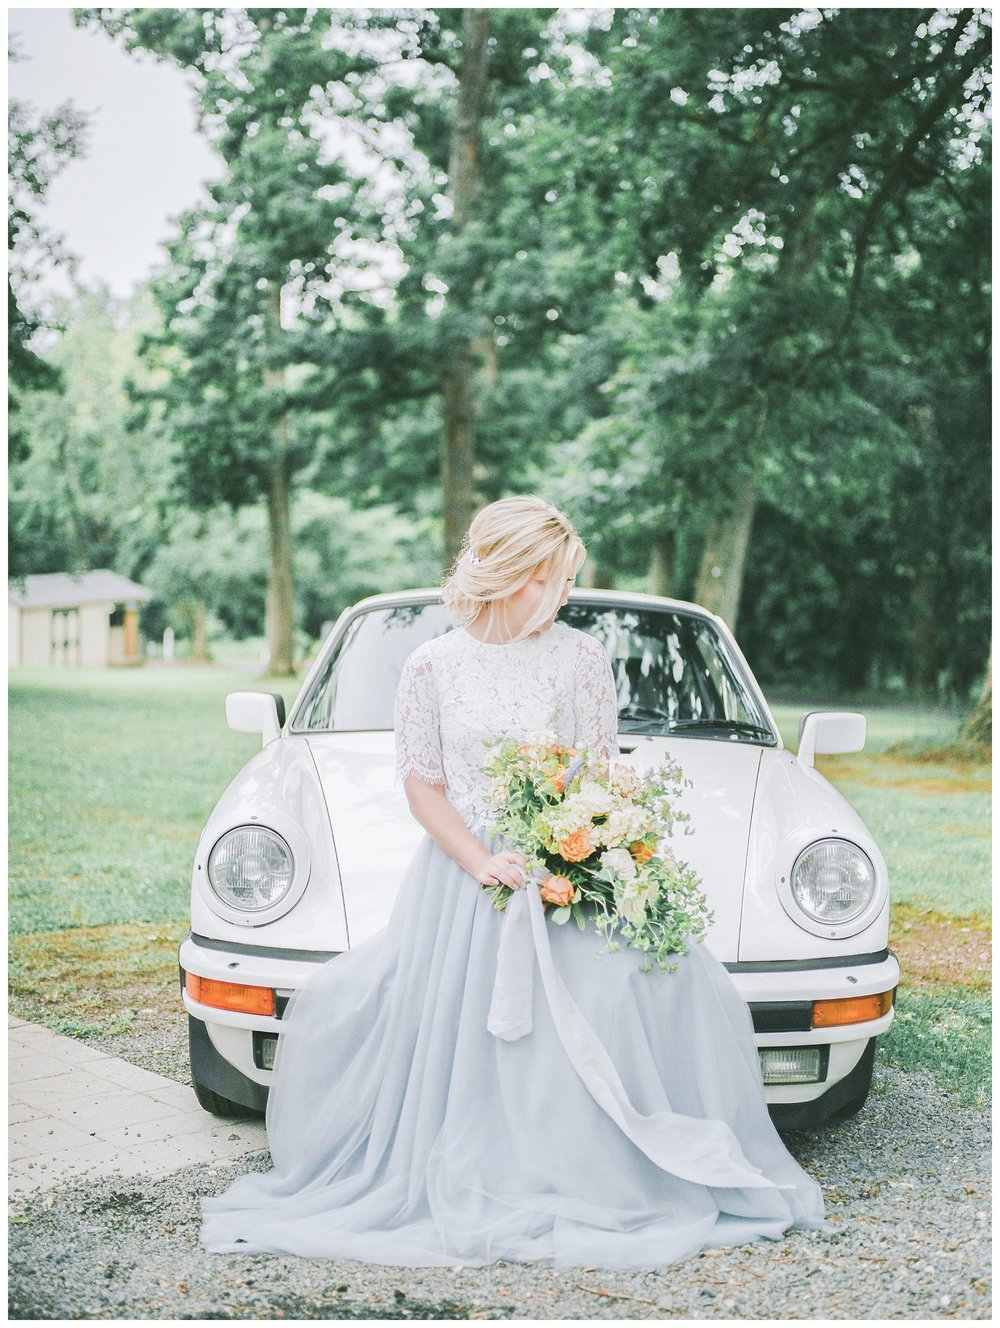 Rust Manor Wedding | Virginia Wedding Photographer Kir Tuben_0040.jpg